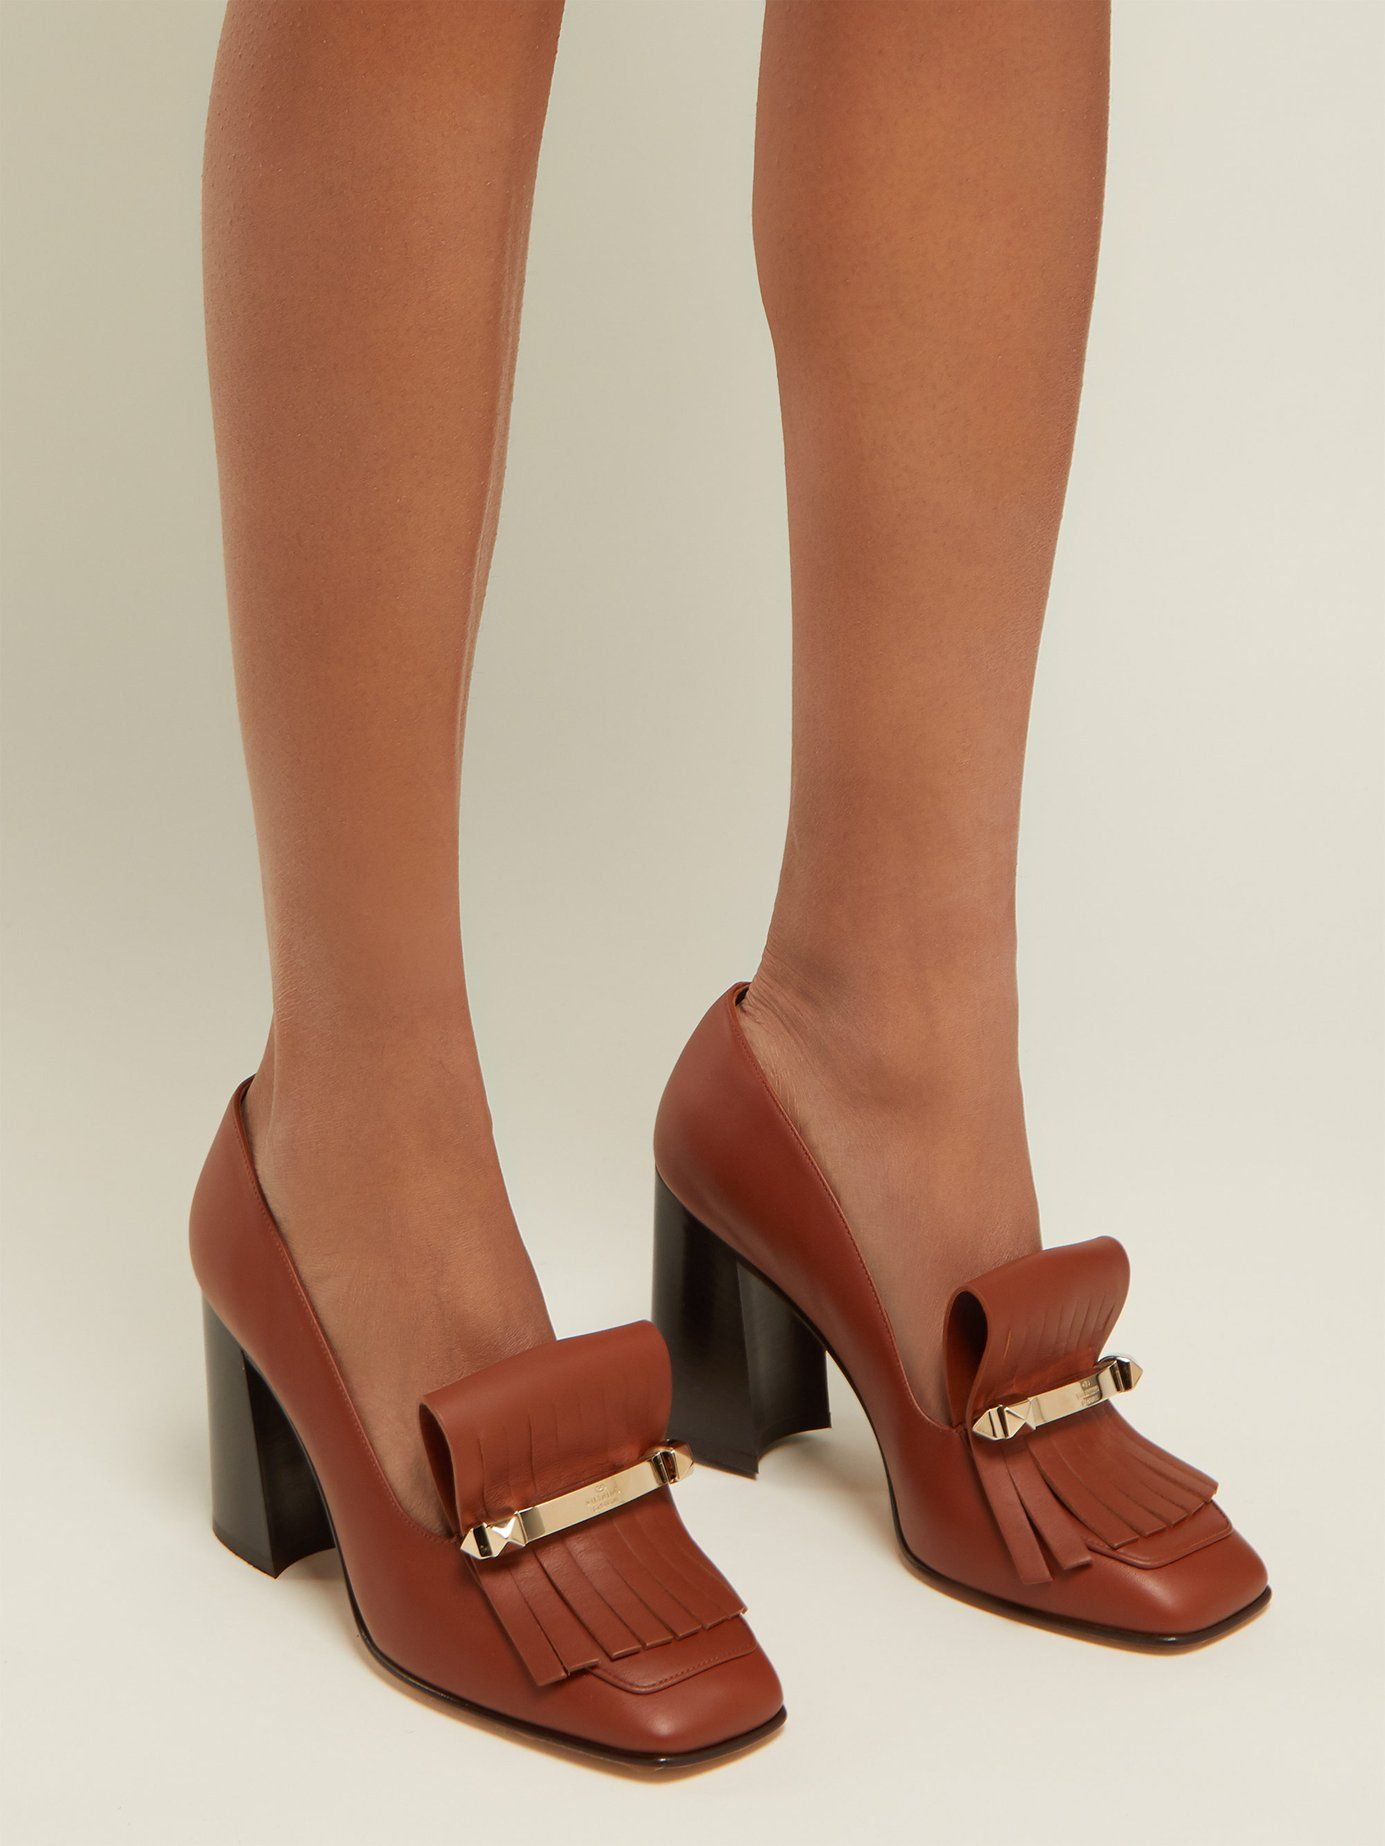 d383f86e238 Uptown fringed leather loafer pumps